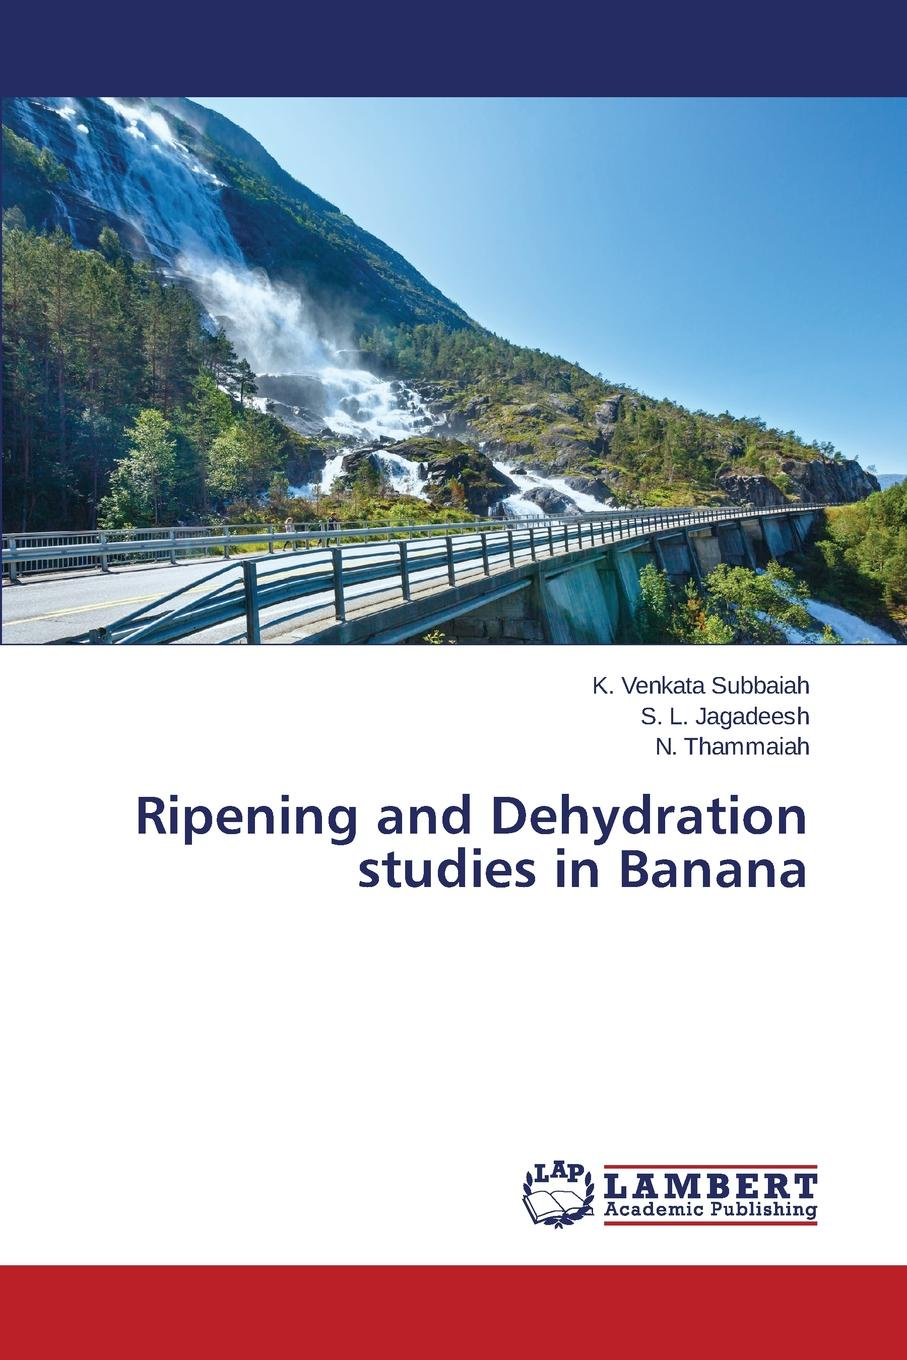 Venkata Subbaiah K., Jagadeesh S. L., Thammaiah N. Ripening and Dehydration studies in Banana скейтборд usd pro banana and gorilla отзывы